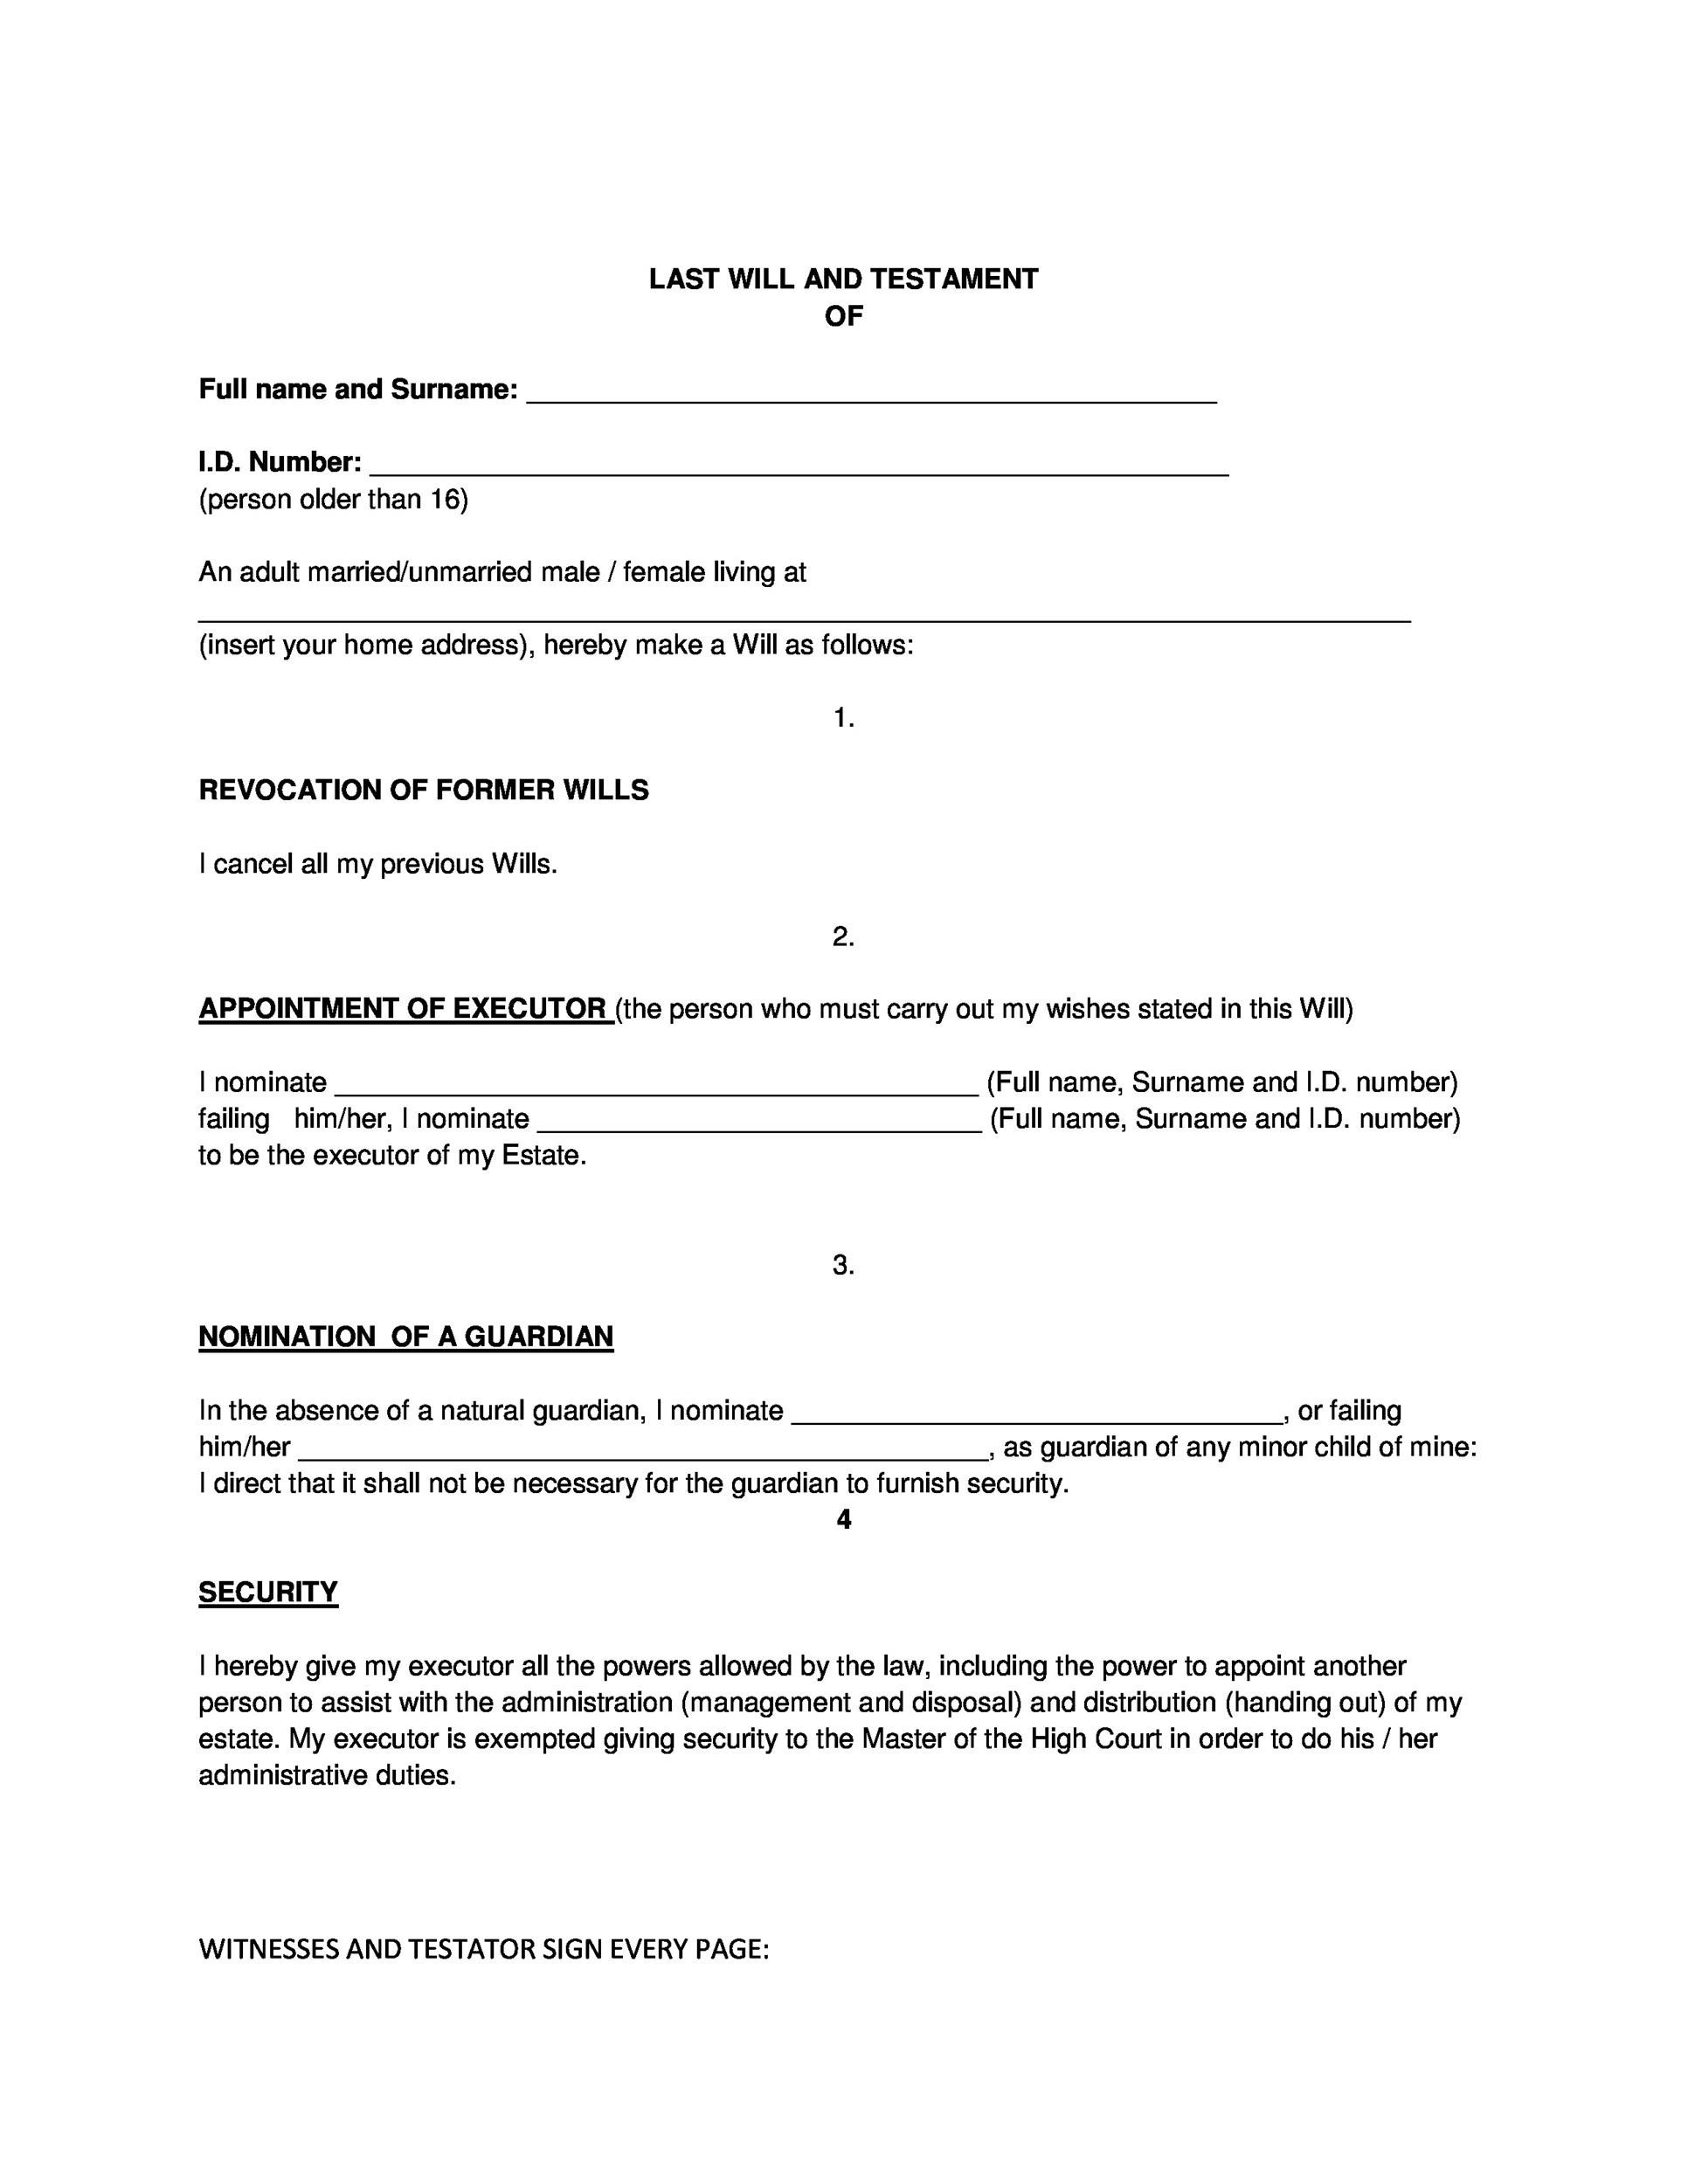 Free Last will and Testament template 34